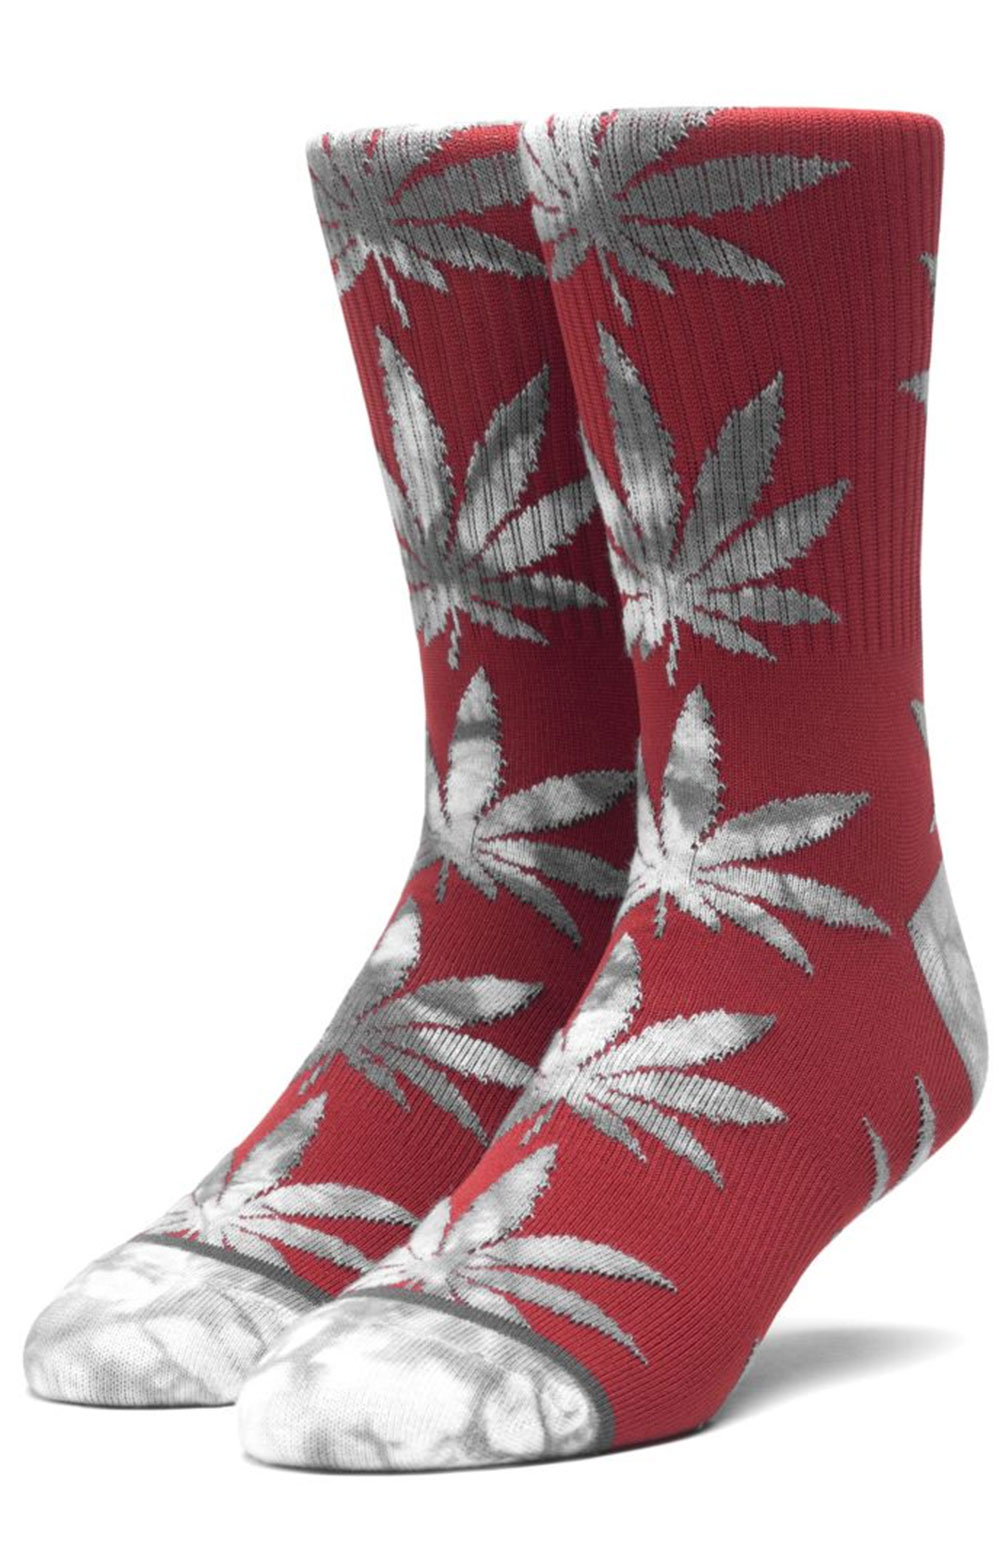 Tie-Dye Leaves Plantlife Sock - Rose Wood Red